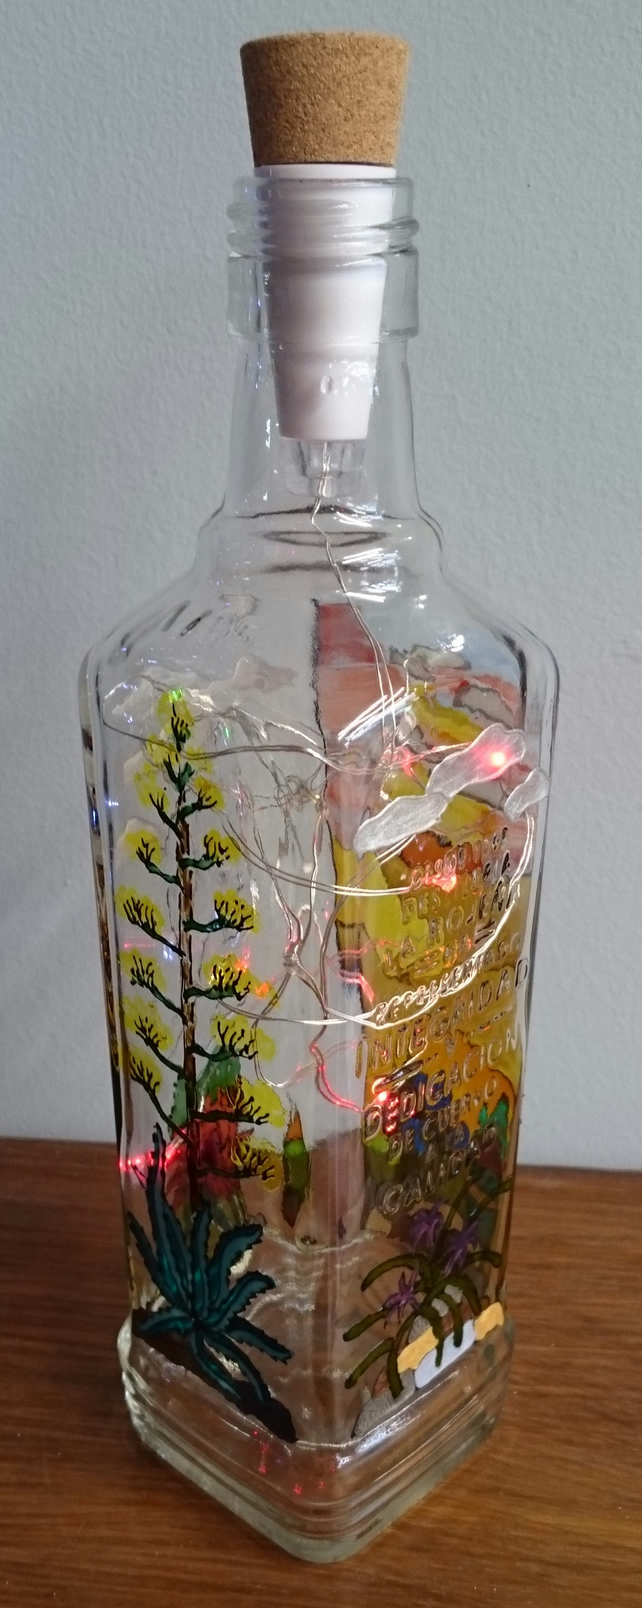 Tequila Sunrise - Handpainted Bottle Light